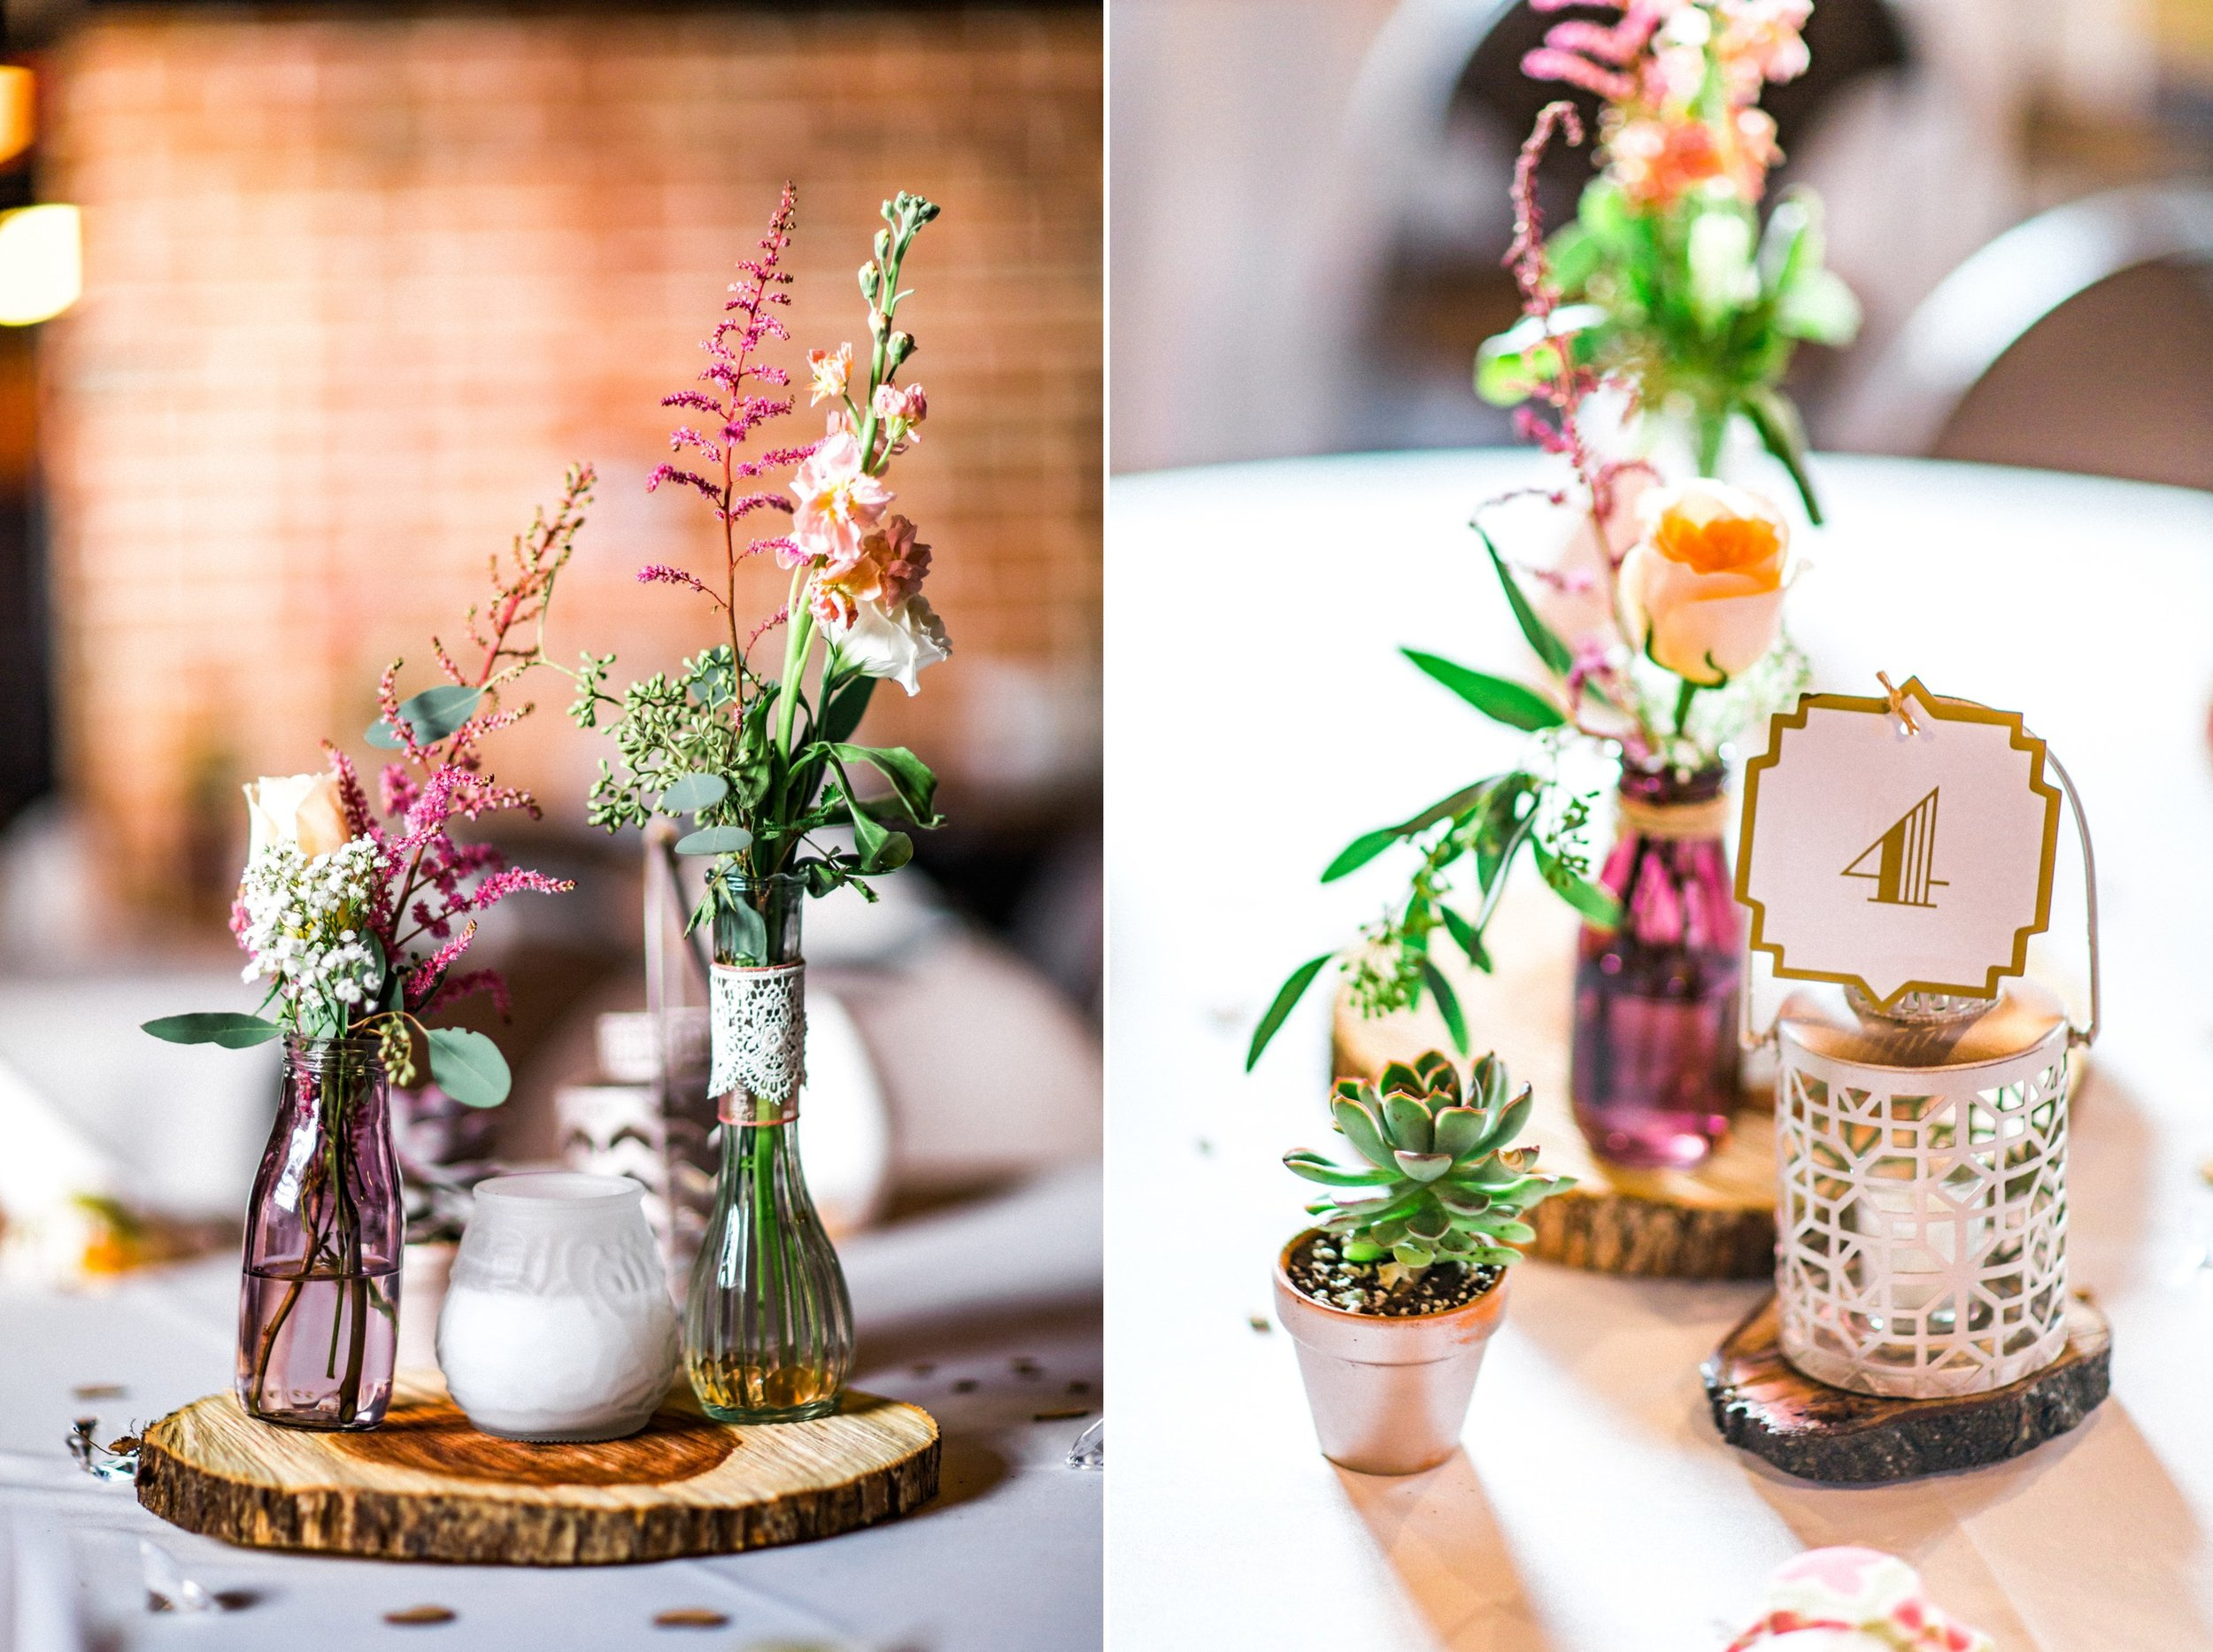 Rustic Chic Gatsby Bicycle themed Wedding Reception at the Winter Park Farmer's Market